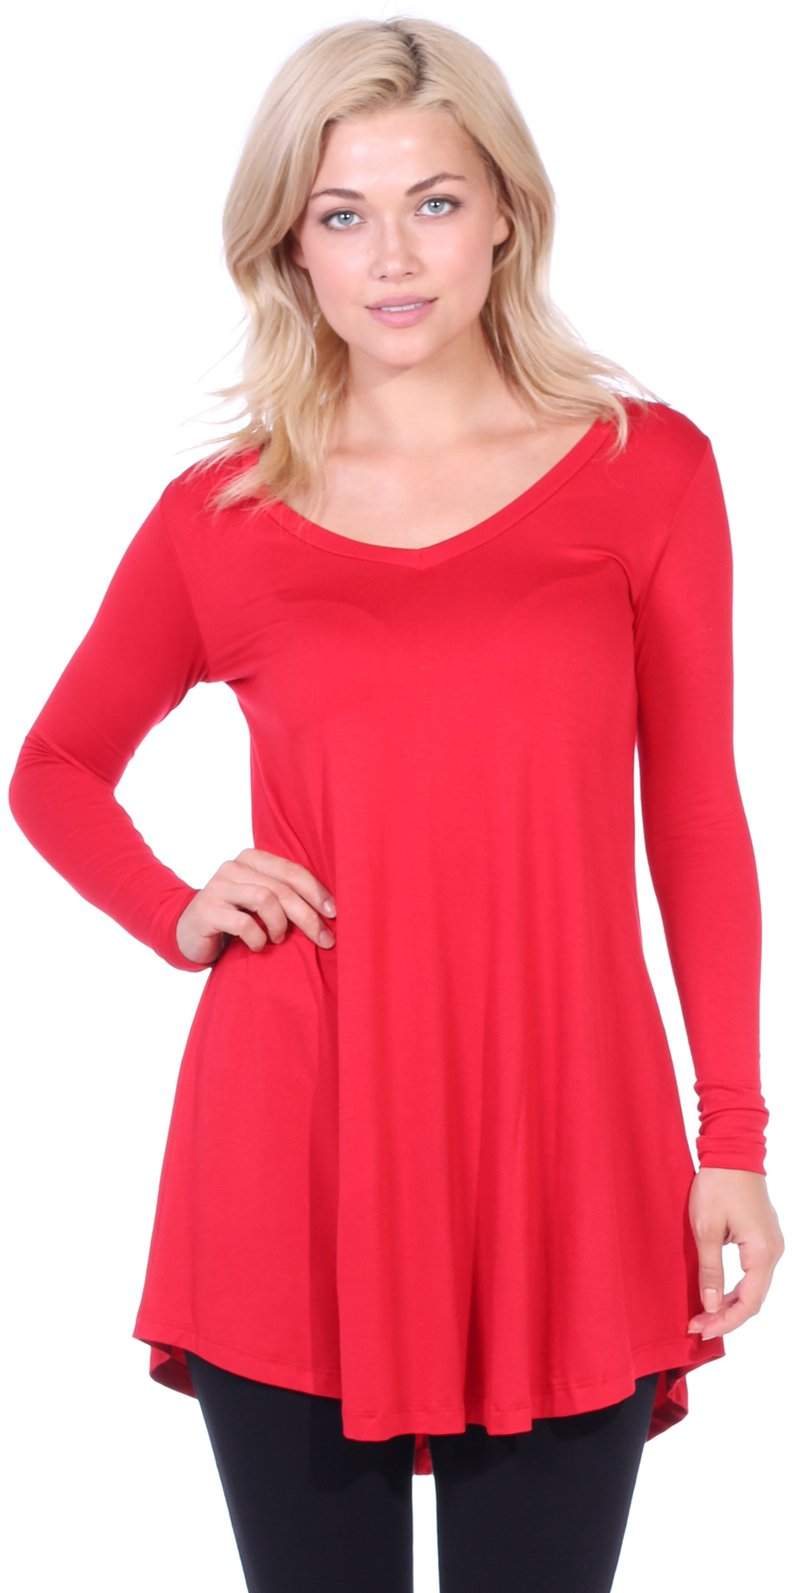 6d2acc18855 Popana Women s Tunic Tops for Leggings Long Sleeve Shirt Plus Size Made in  USA X-Large Red